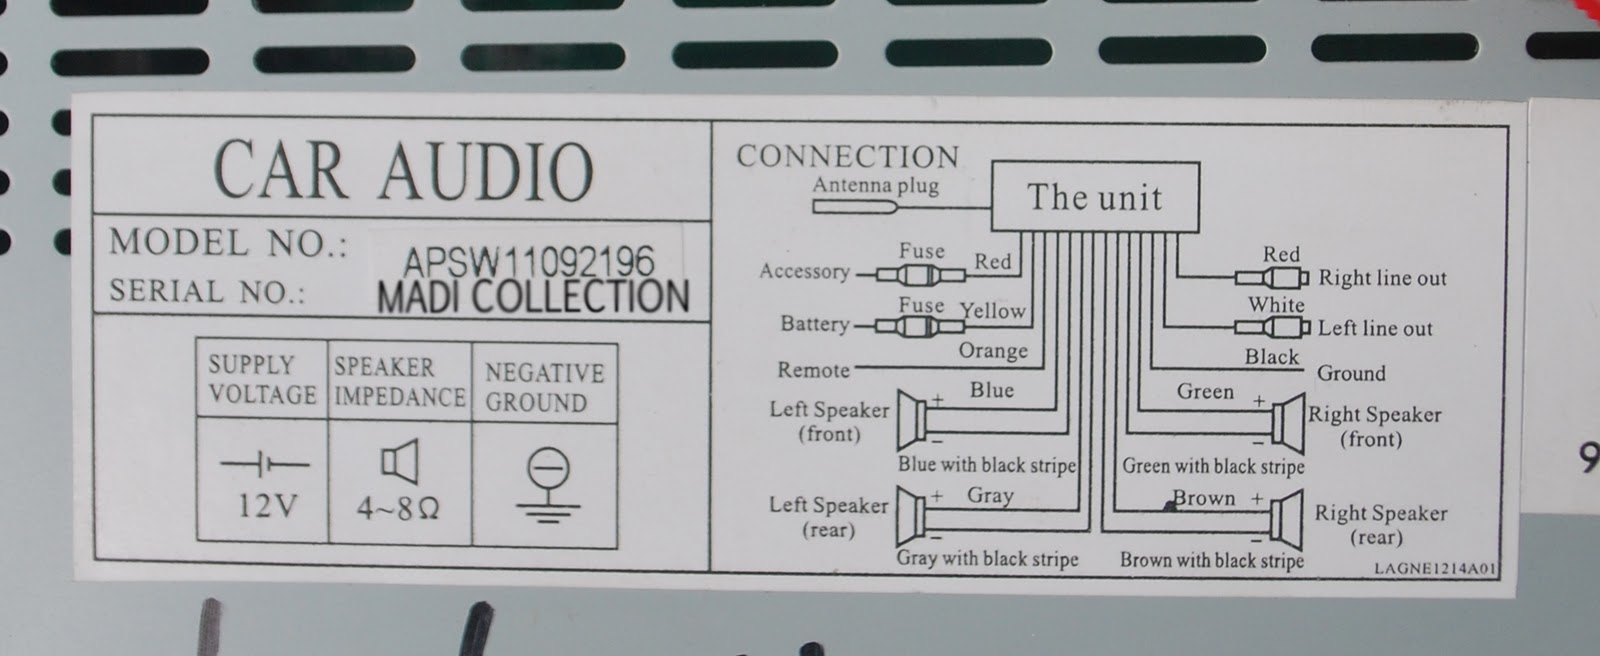 perodua kancil fuse box diagram 31 wiring diagram images [ 1600 x 656 Pixel ]